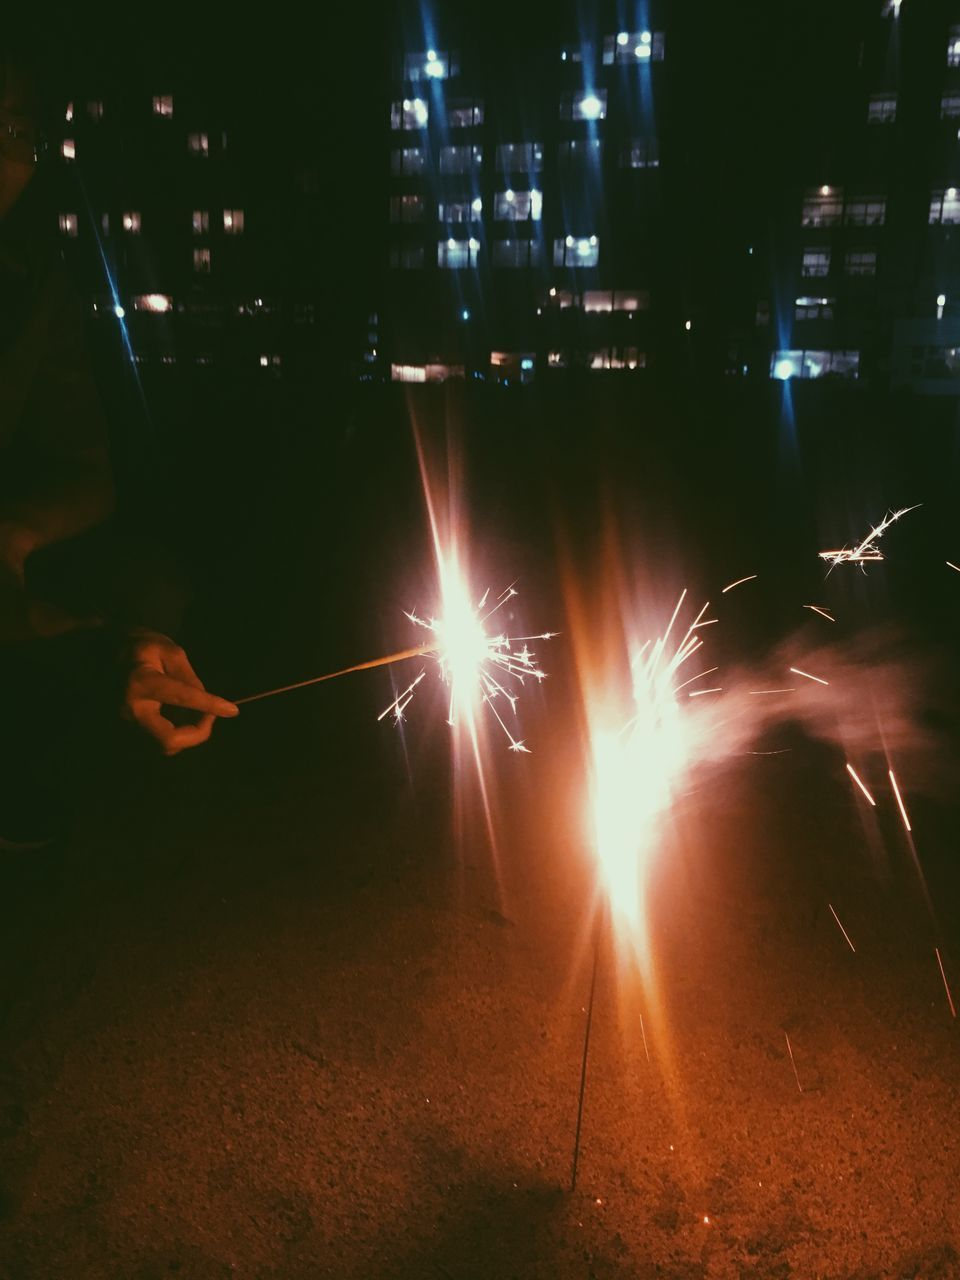 night, illuminated, motion, blurred motion, long exposure, real people, one person, glowing, burning, human hand, sparks, hand, firework, nature, flame, building exterior, men, heat - temperature, holding, architecture, sparkler, firework - man made object, lens flare